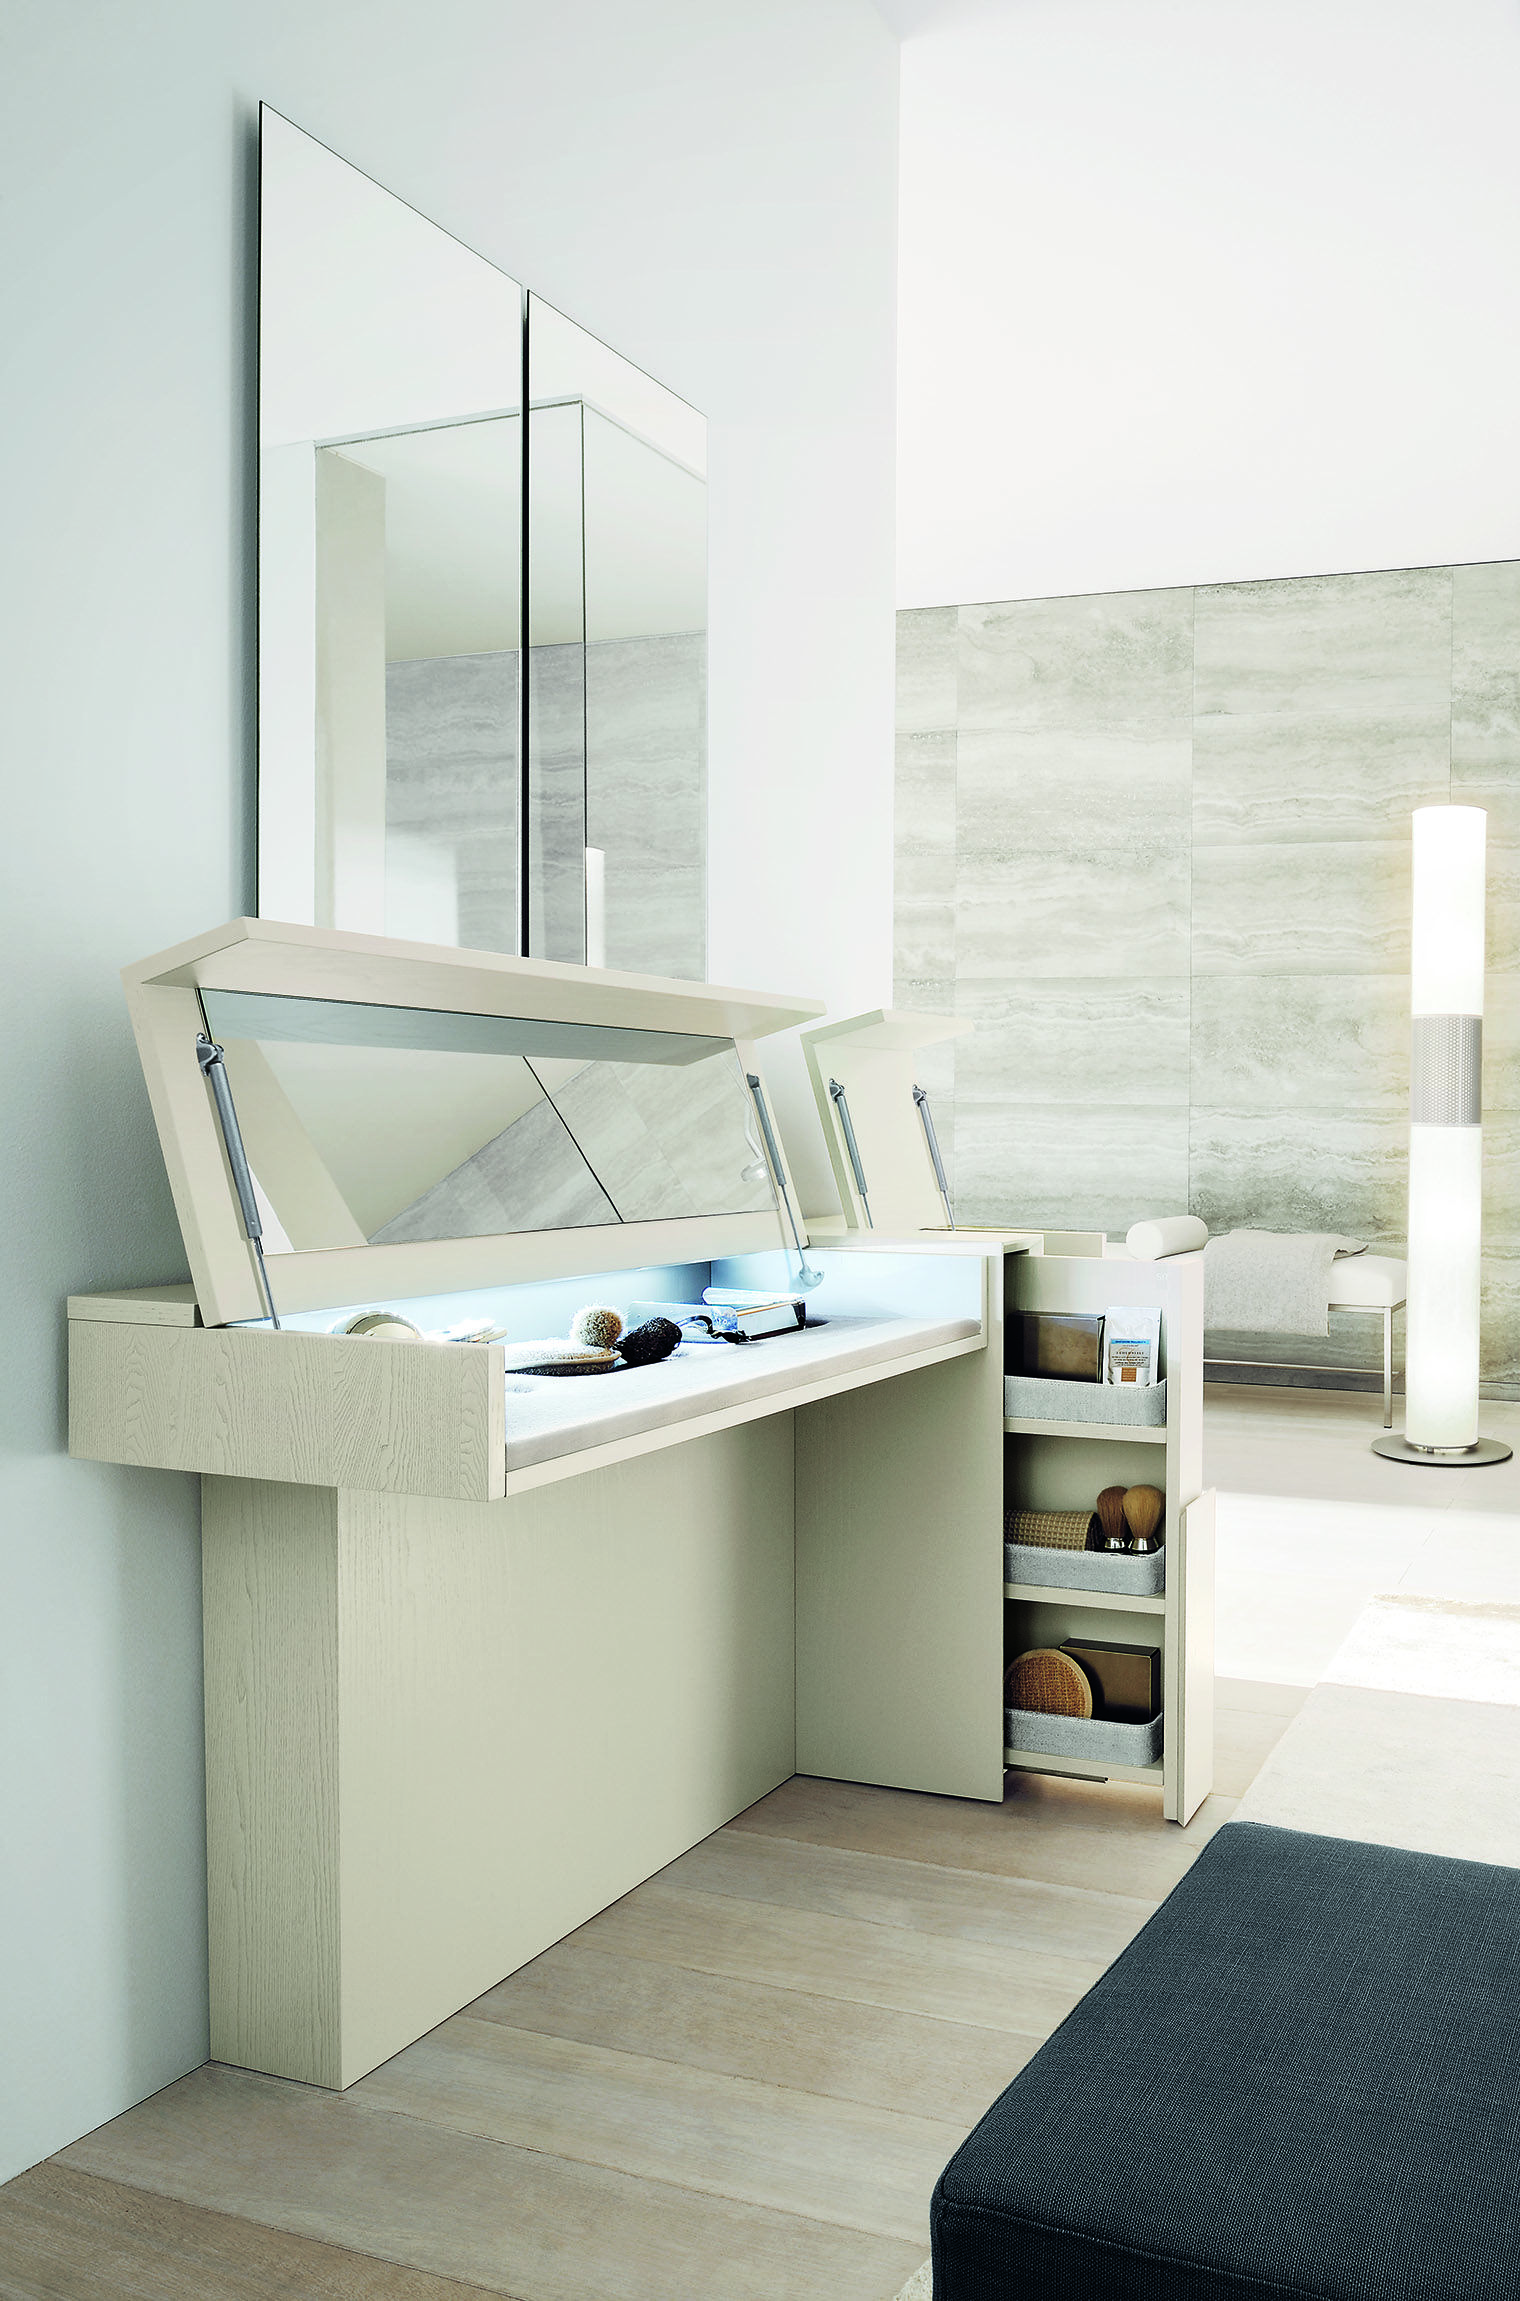 Made In Italy The Fabulous Prestige Dressing Table Ultra Modern With Pull Out Storag Dressing Table Modern Floating Bathroom Vanities Small Bathroom Vanities